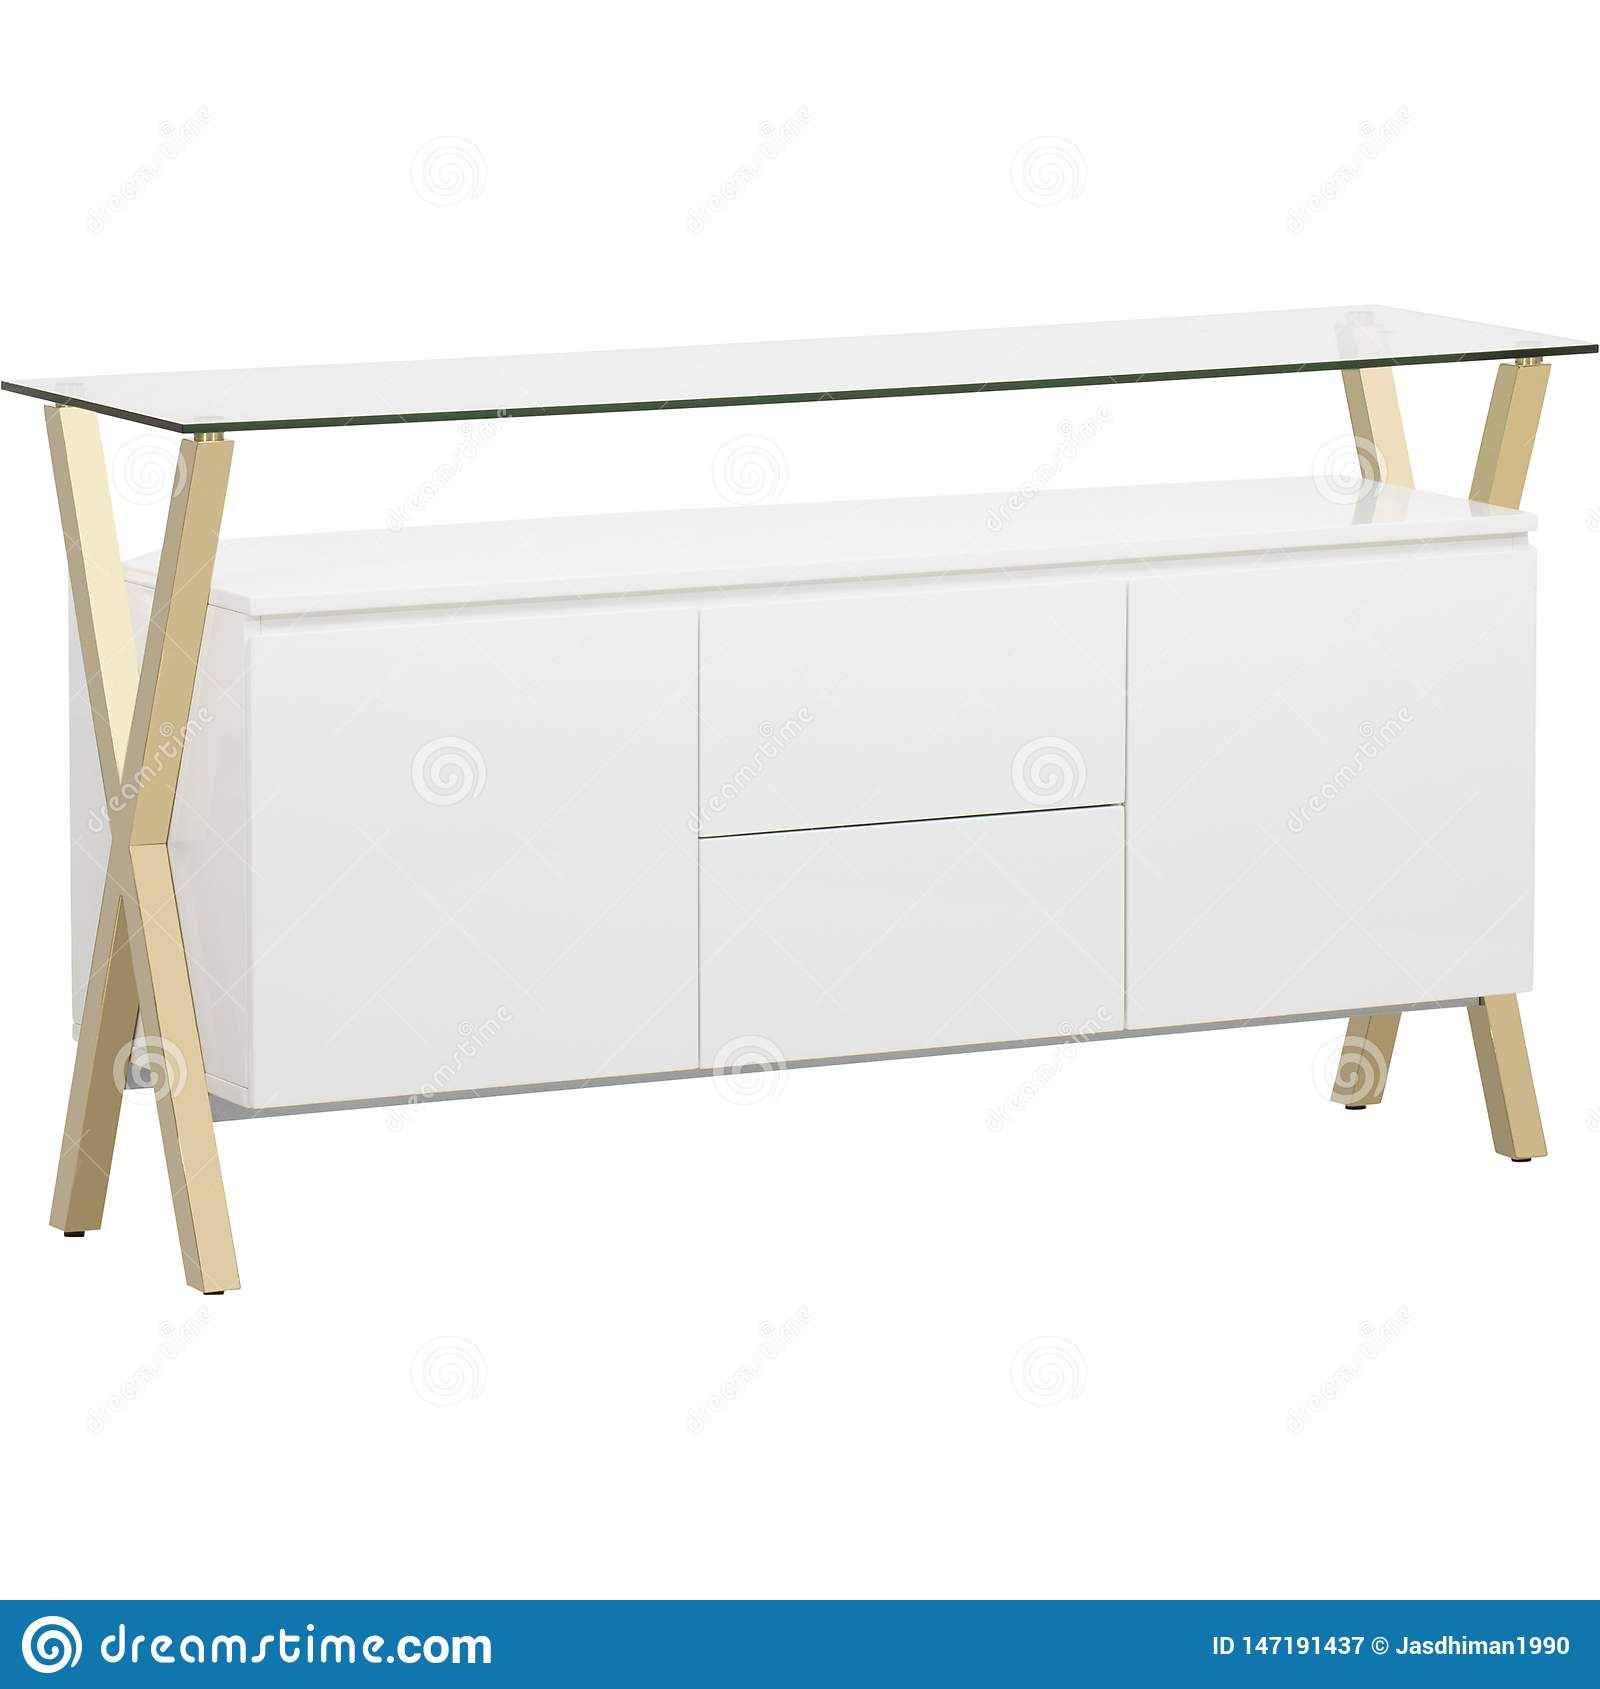 Bathroom bench Luxury Bathroom Bench - ImageMatch Fashion With Function, Anchor your home office in chic, mid-century modern desig